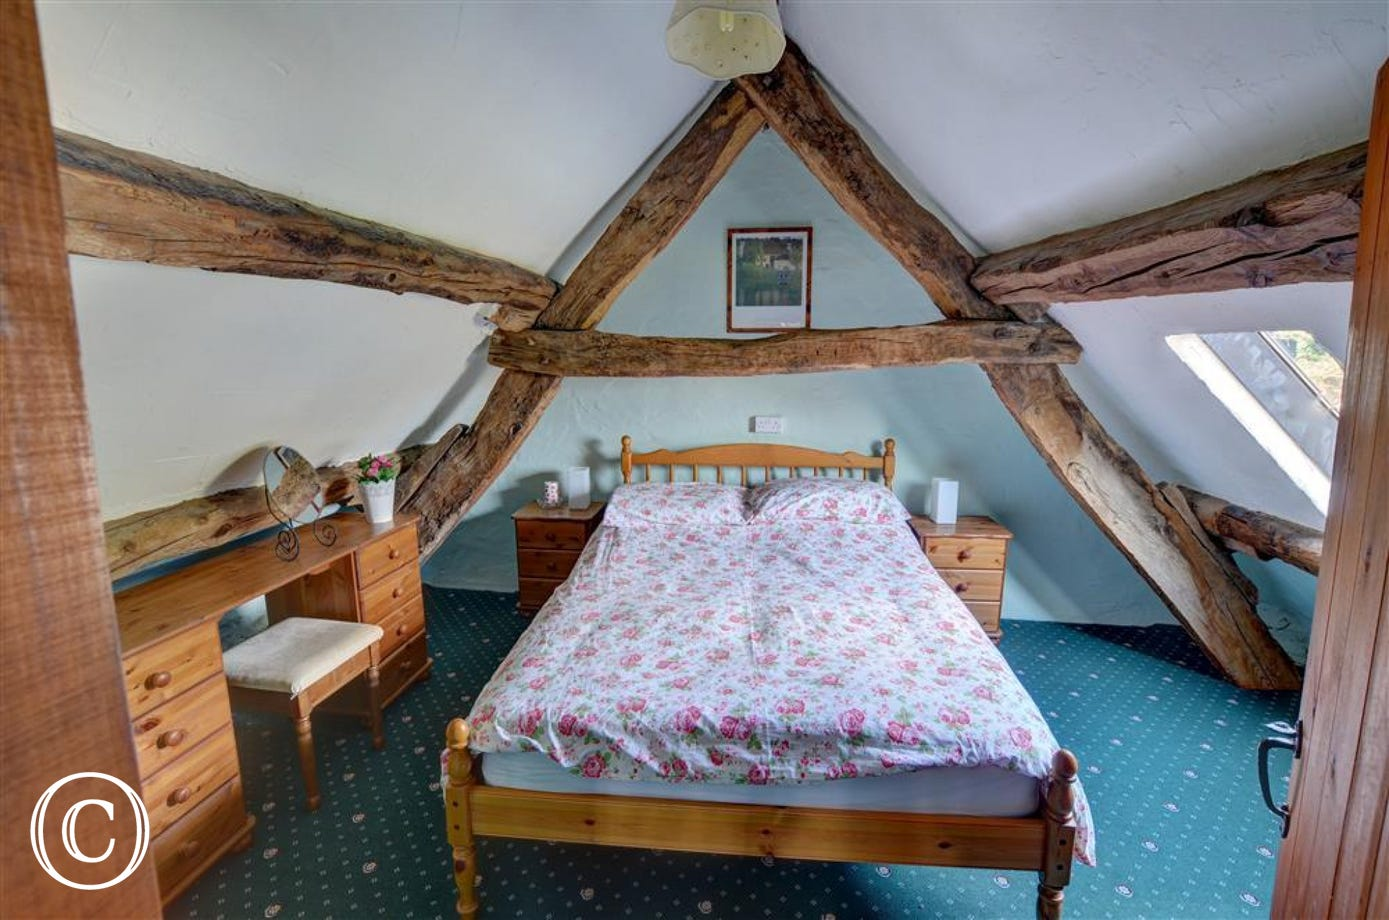 The original cruck frame of the barn is in the attractive double bedroom